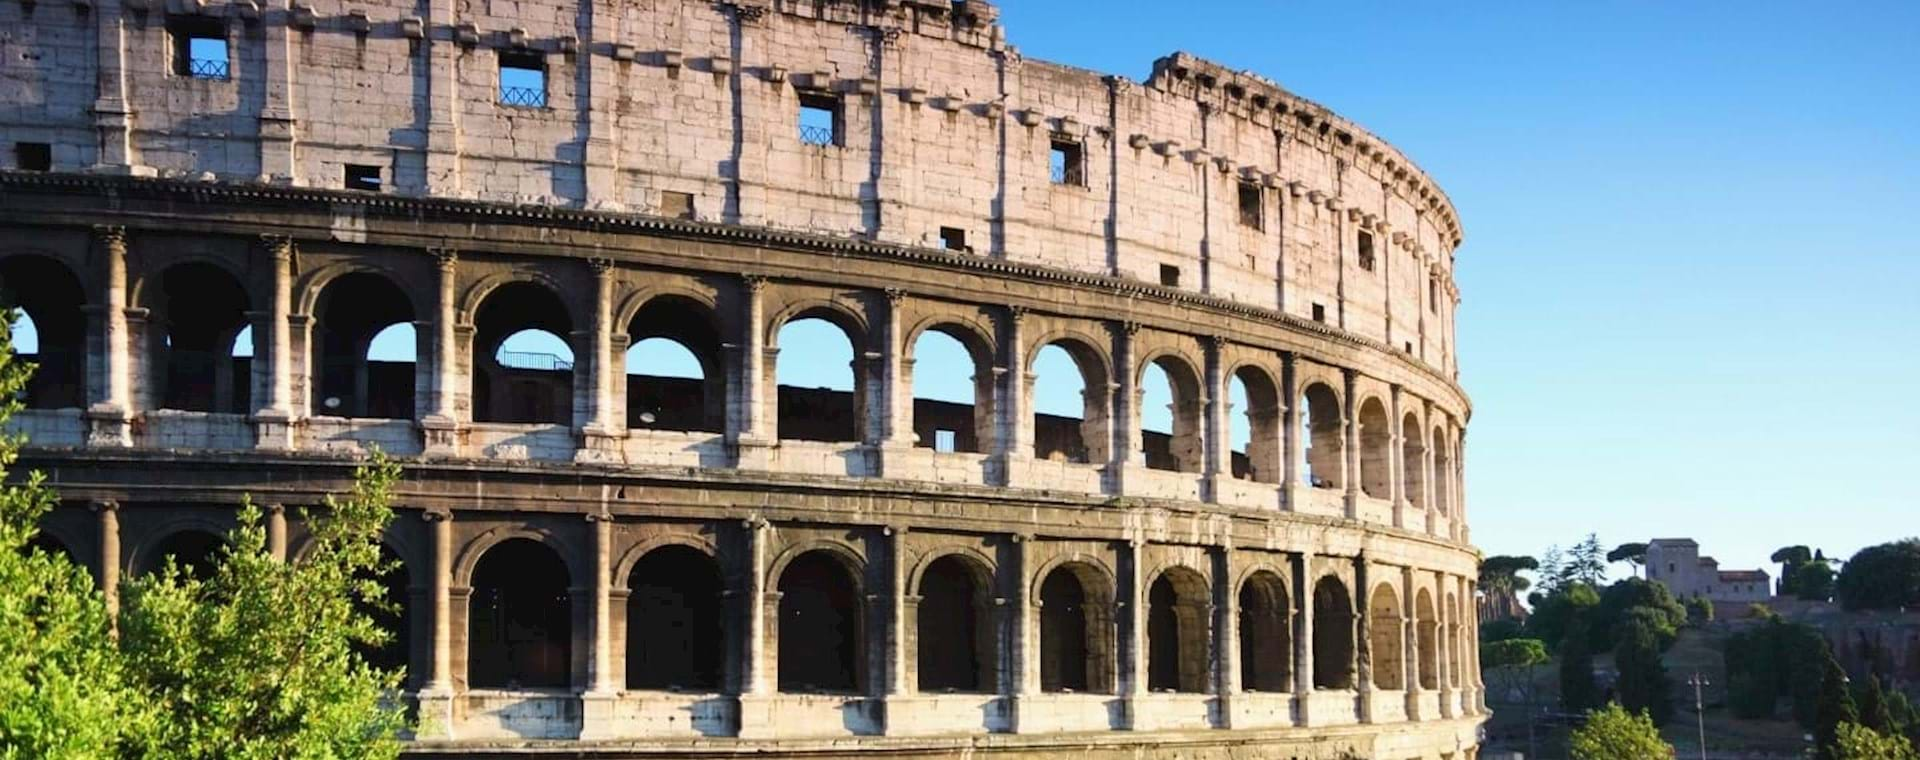 Express Colosseum Tour with Gladiator's Entrance & Arena Floor